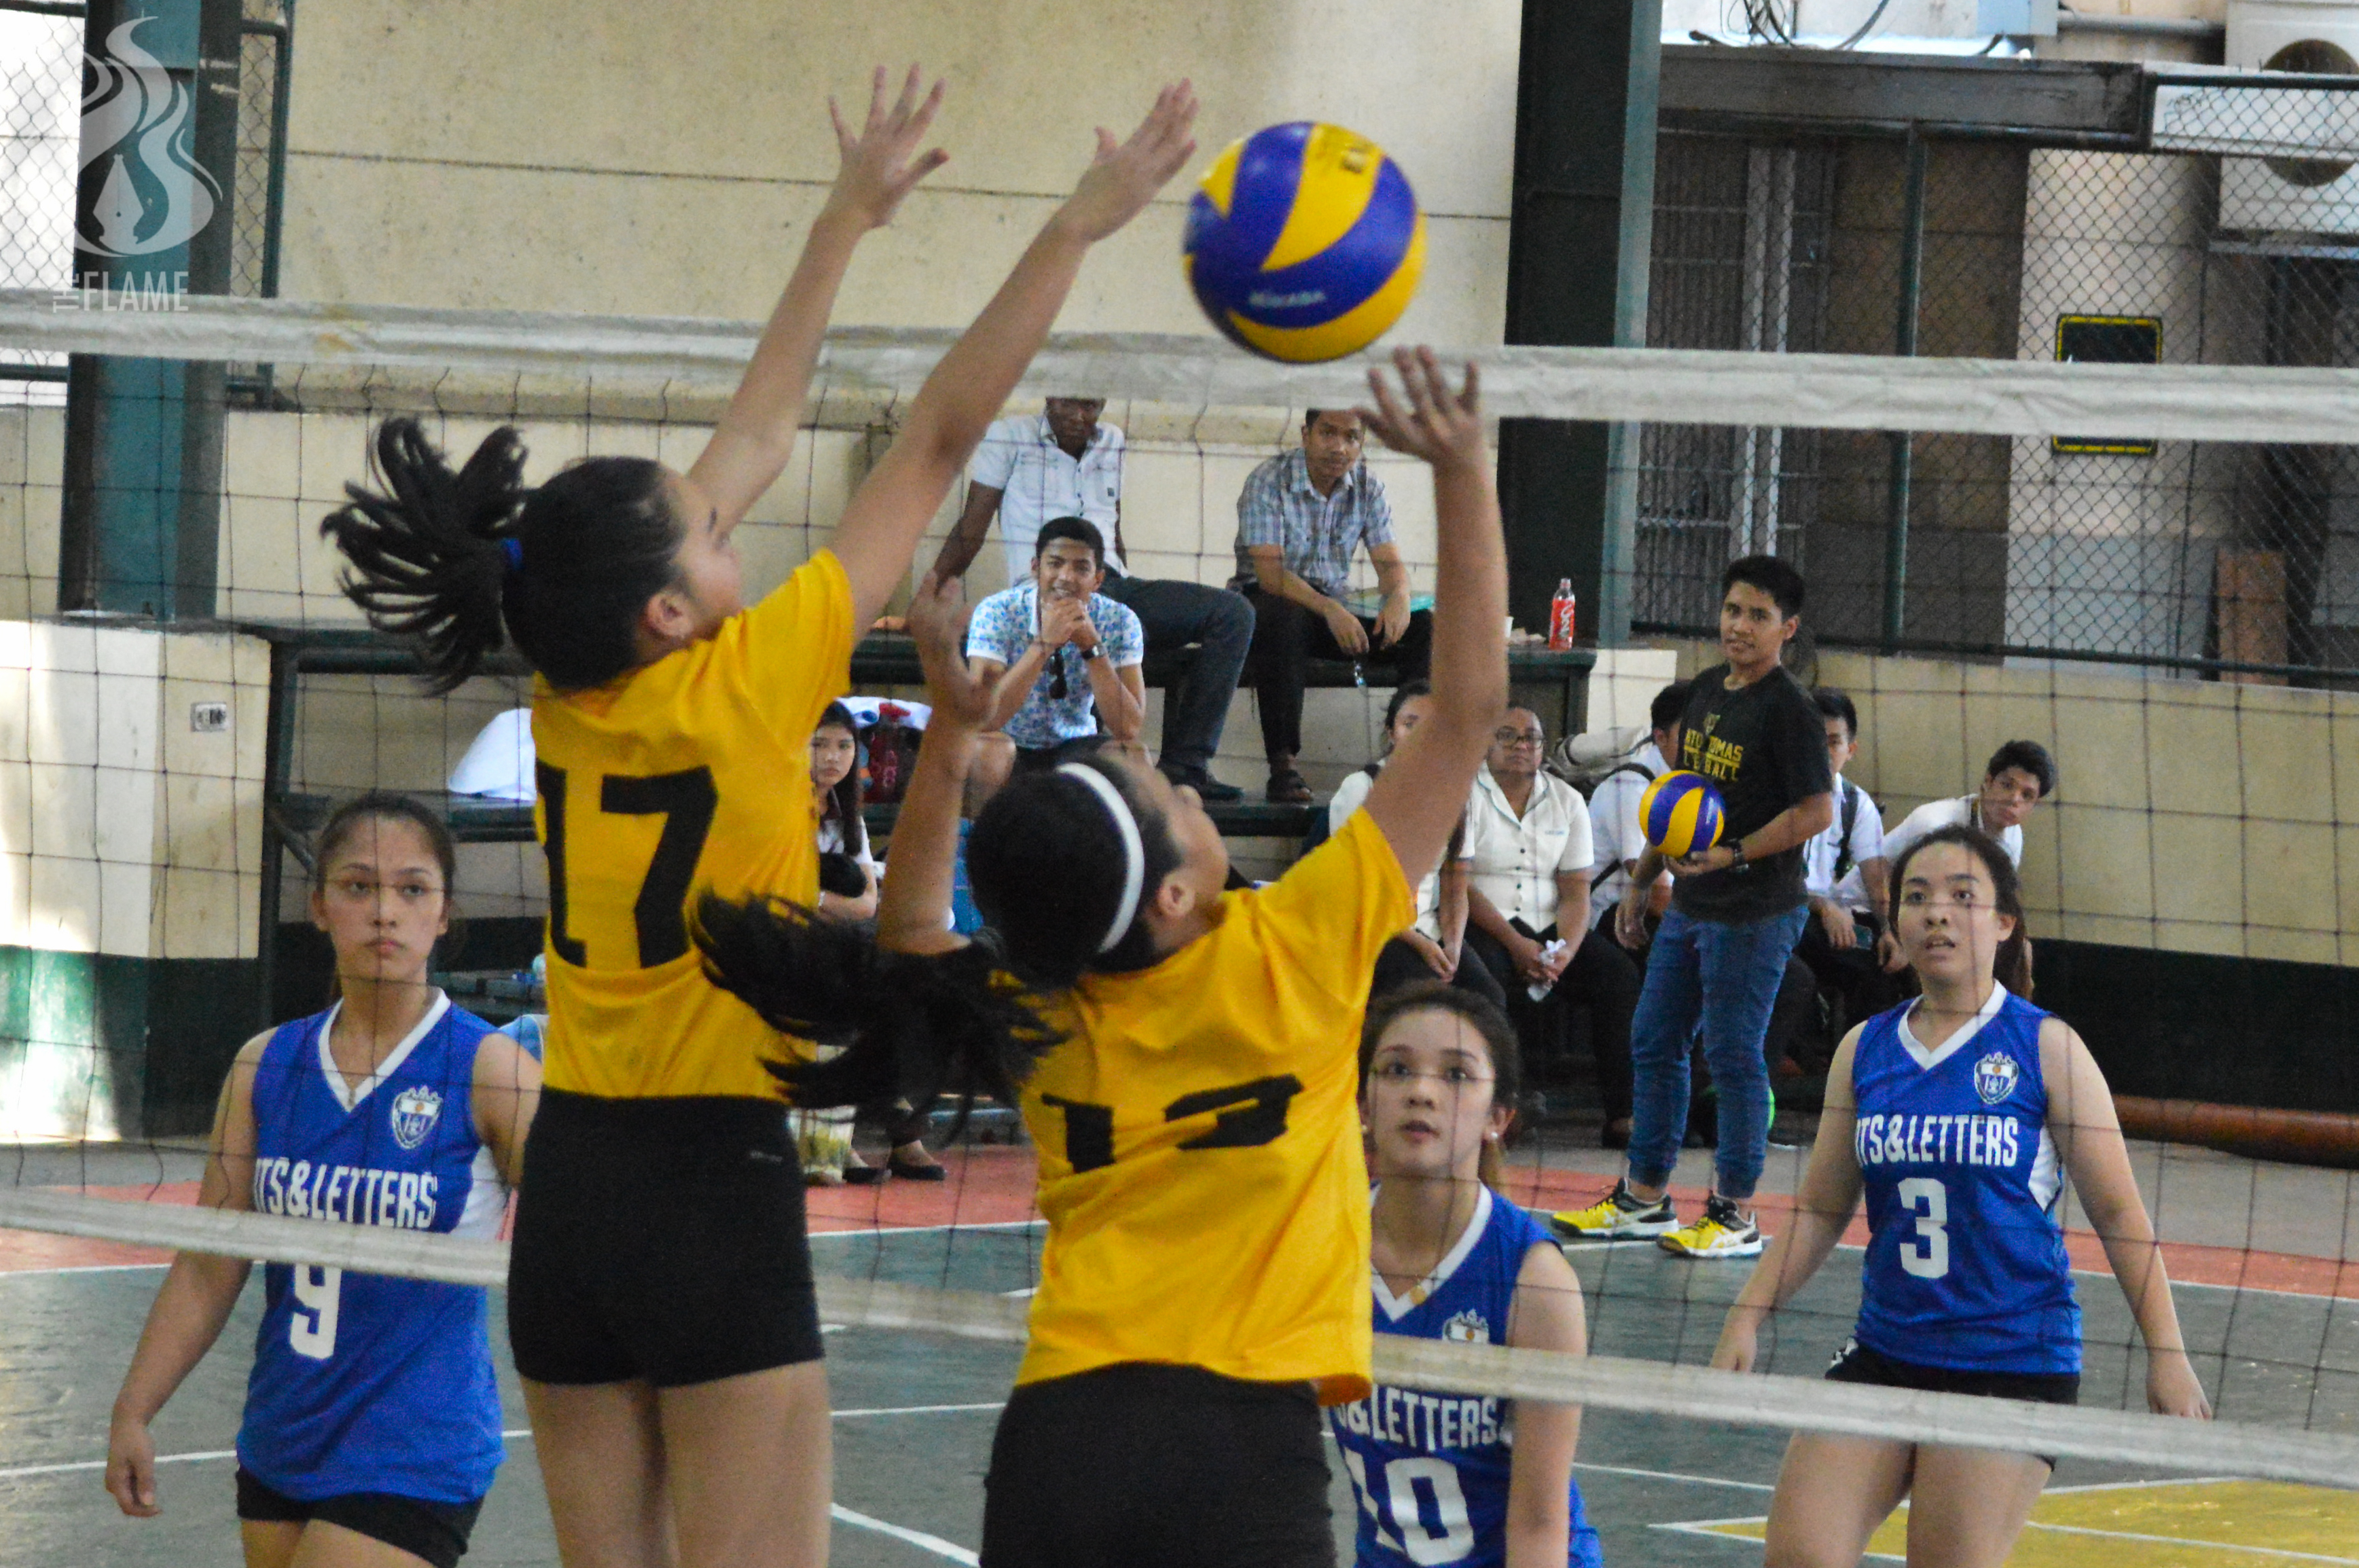 HS-B denies AB of opening game victory